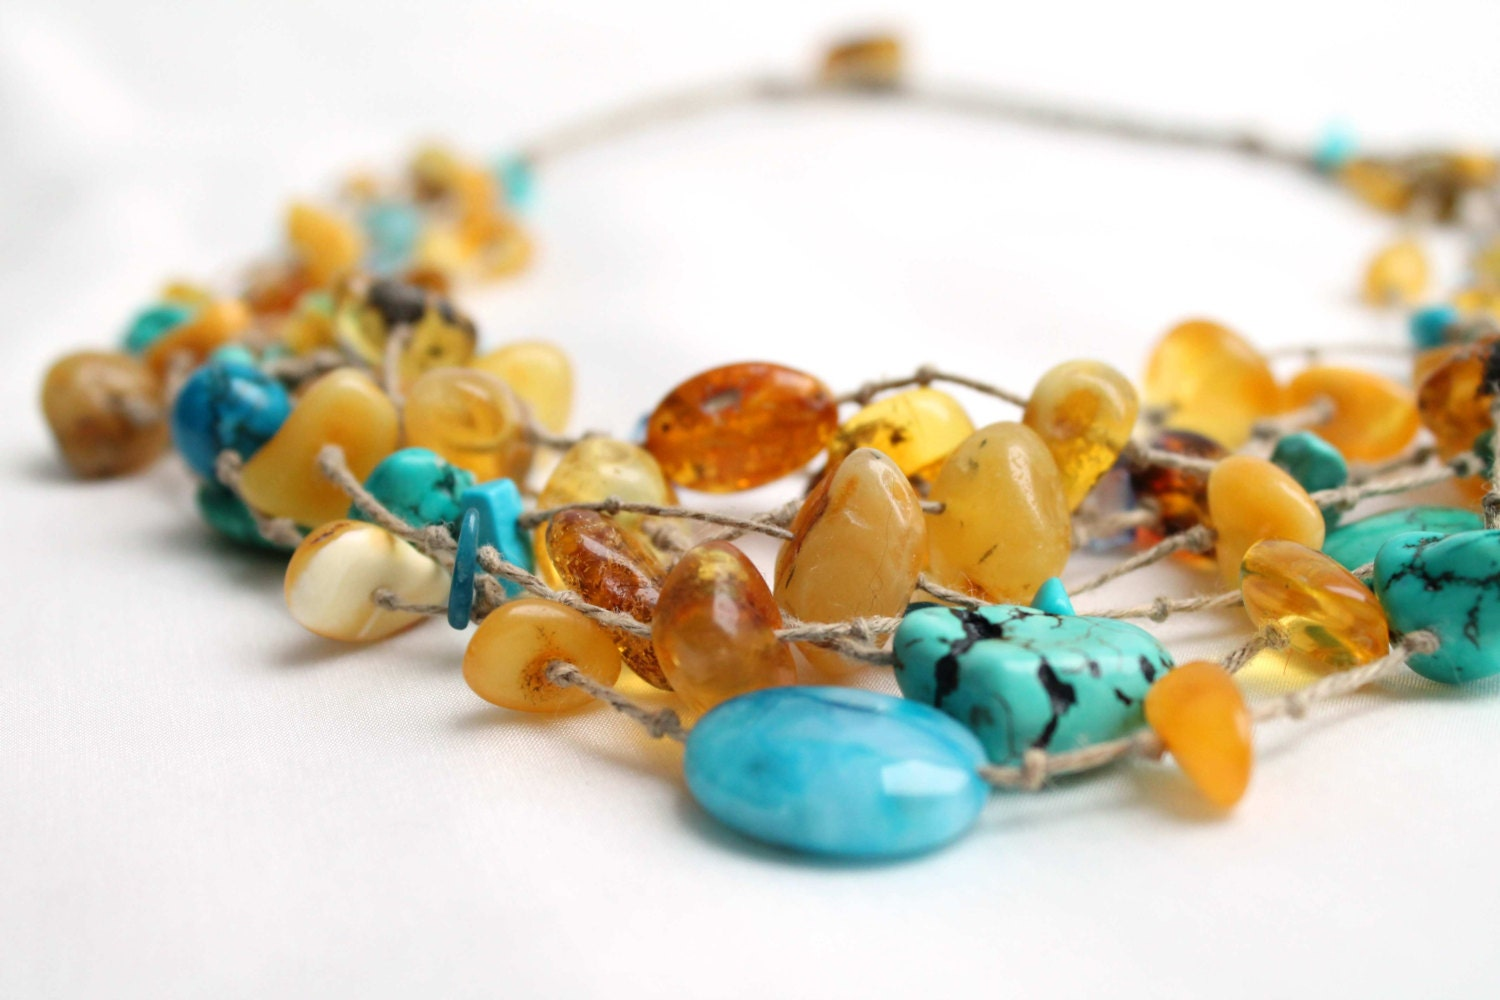 Multi Strand Necklace Yellow Sky Blue Teal Turquoise Jewelry Beach Style Necklace Blue Honey Baltic Amber Sea Finds Summer Fashion Jewelry - DreamsFactory